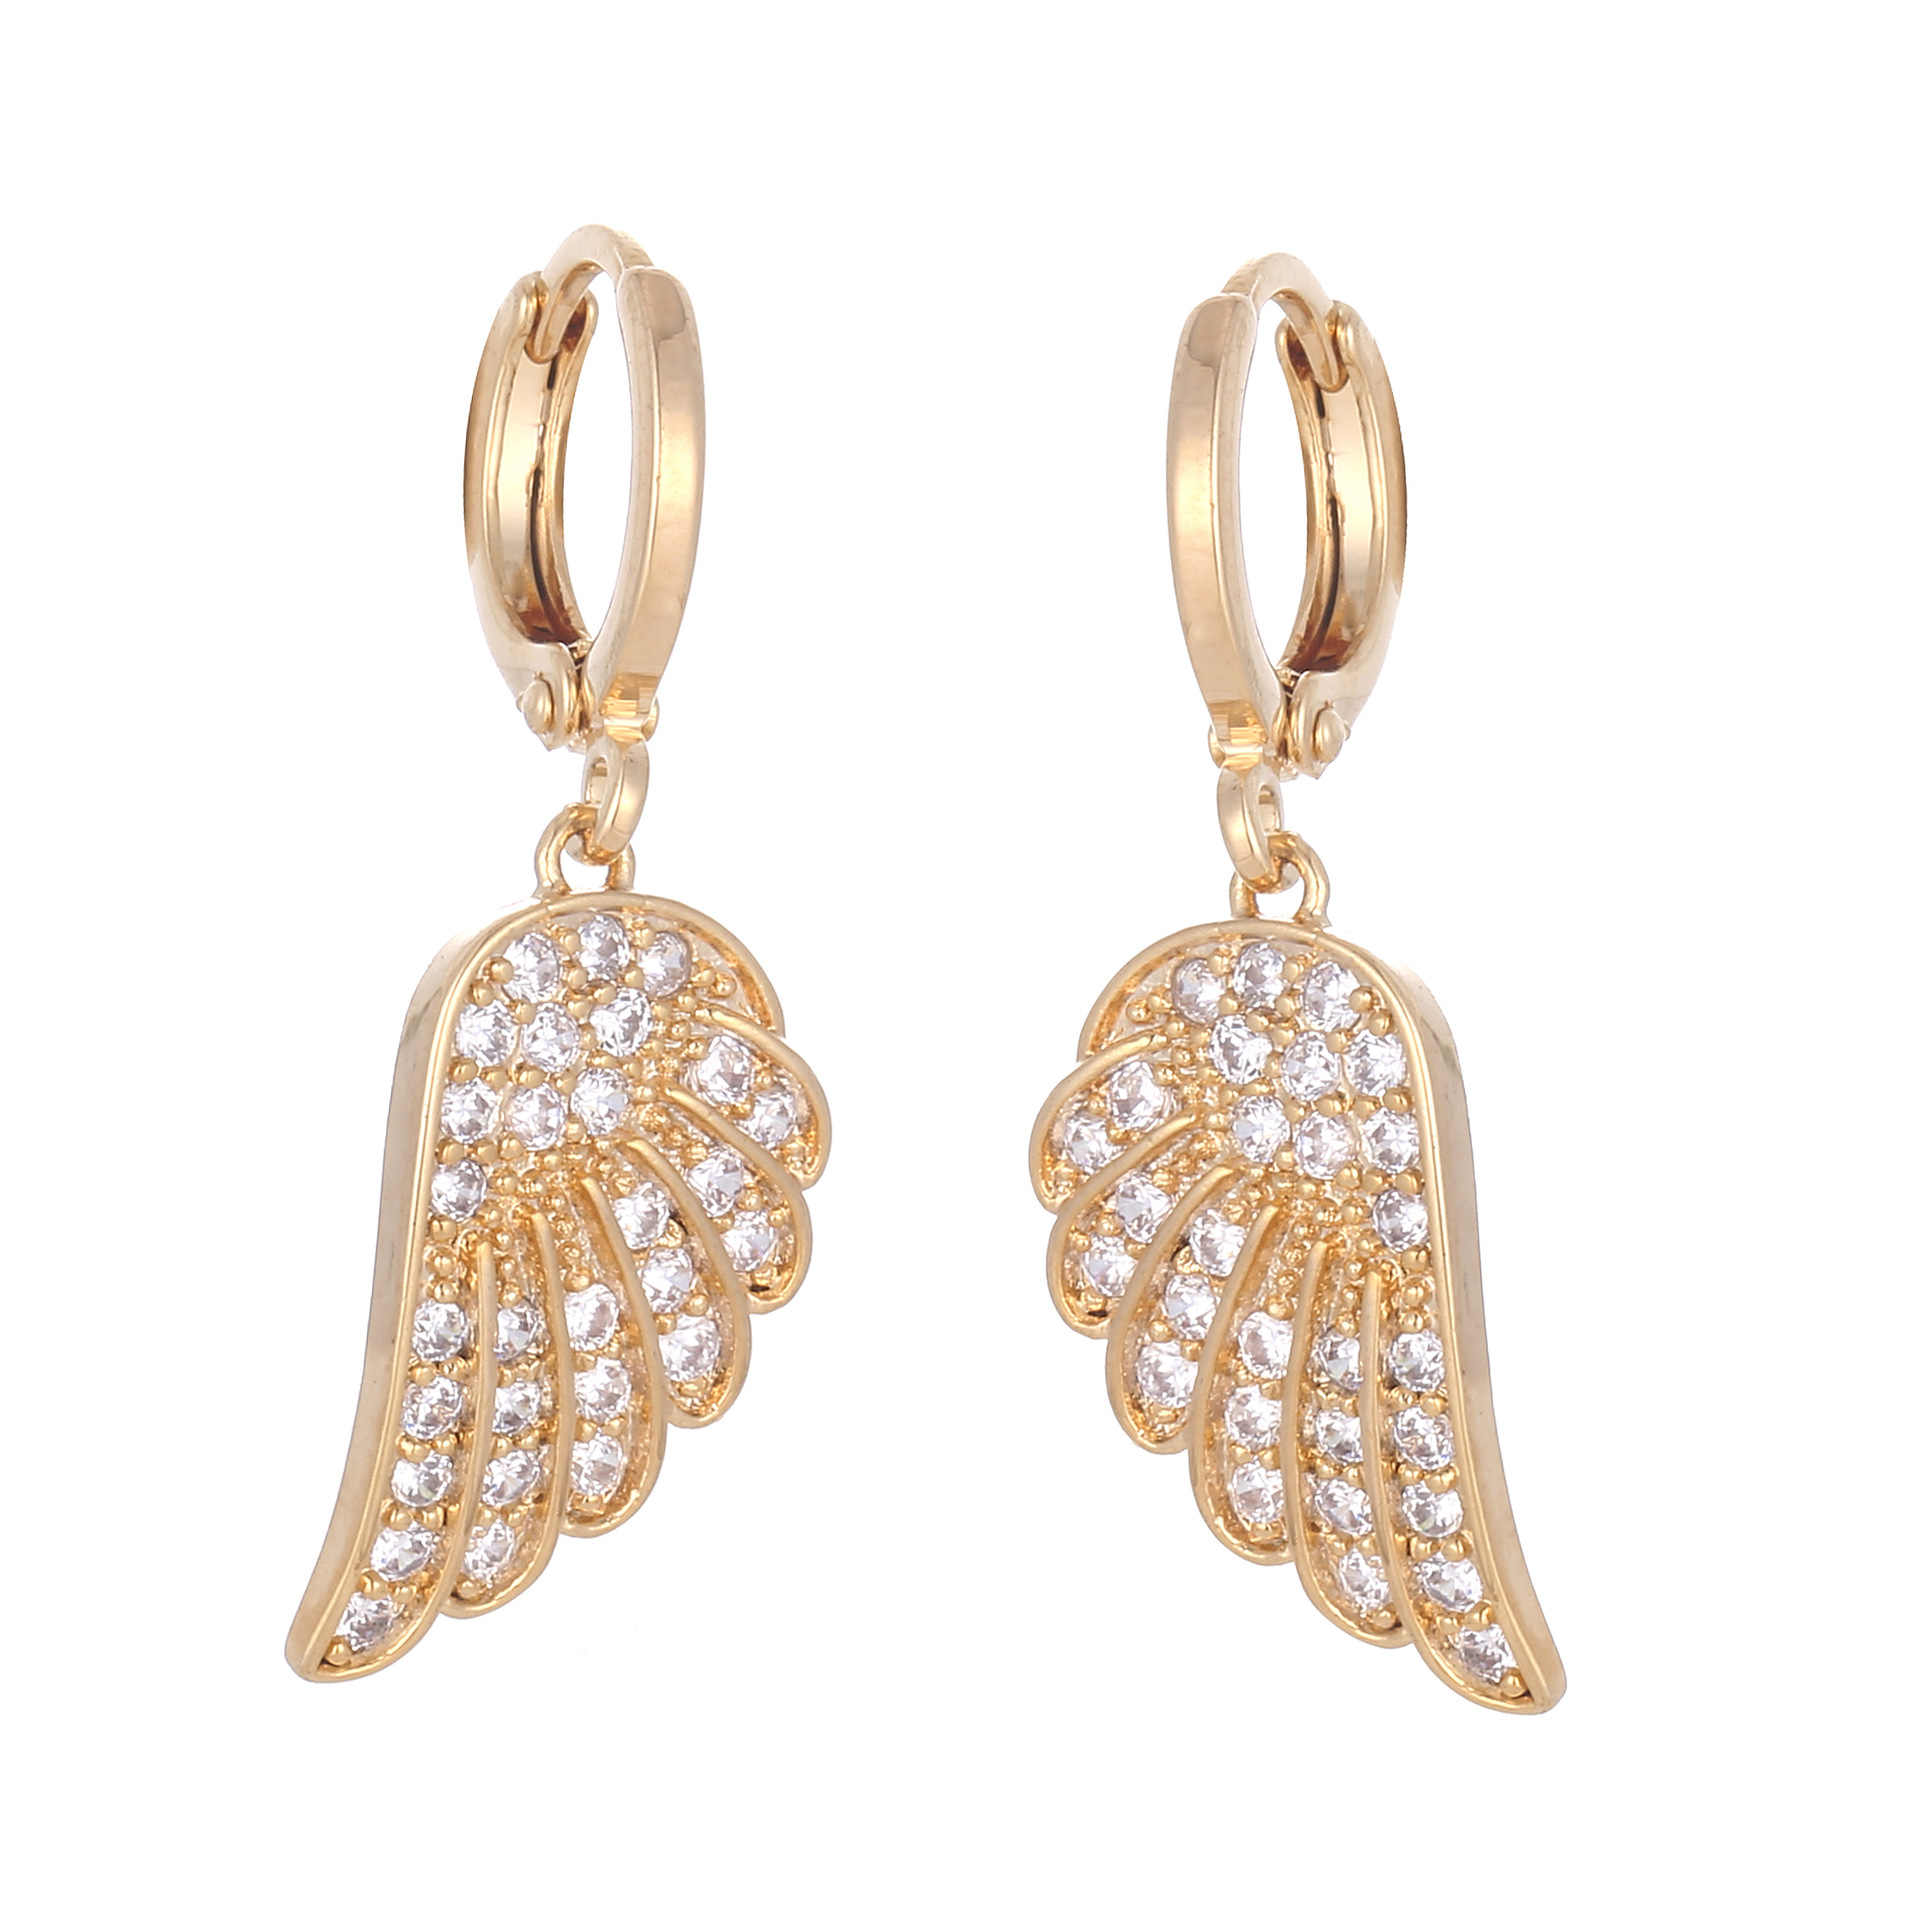 Fashion Jewelry Sweet Romantic Angel Wing CZ Drop Earring For Women